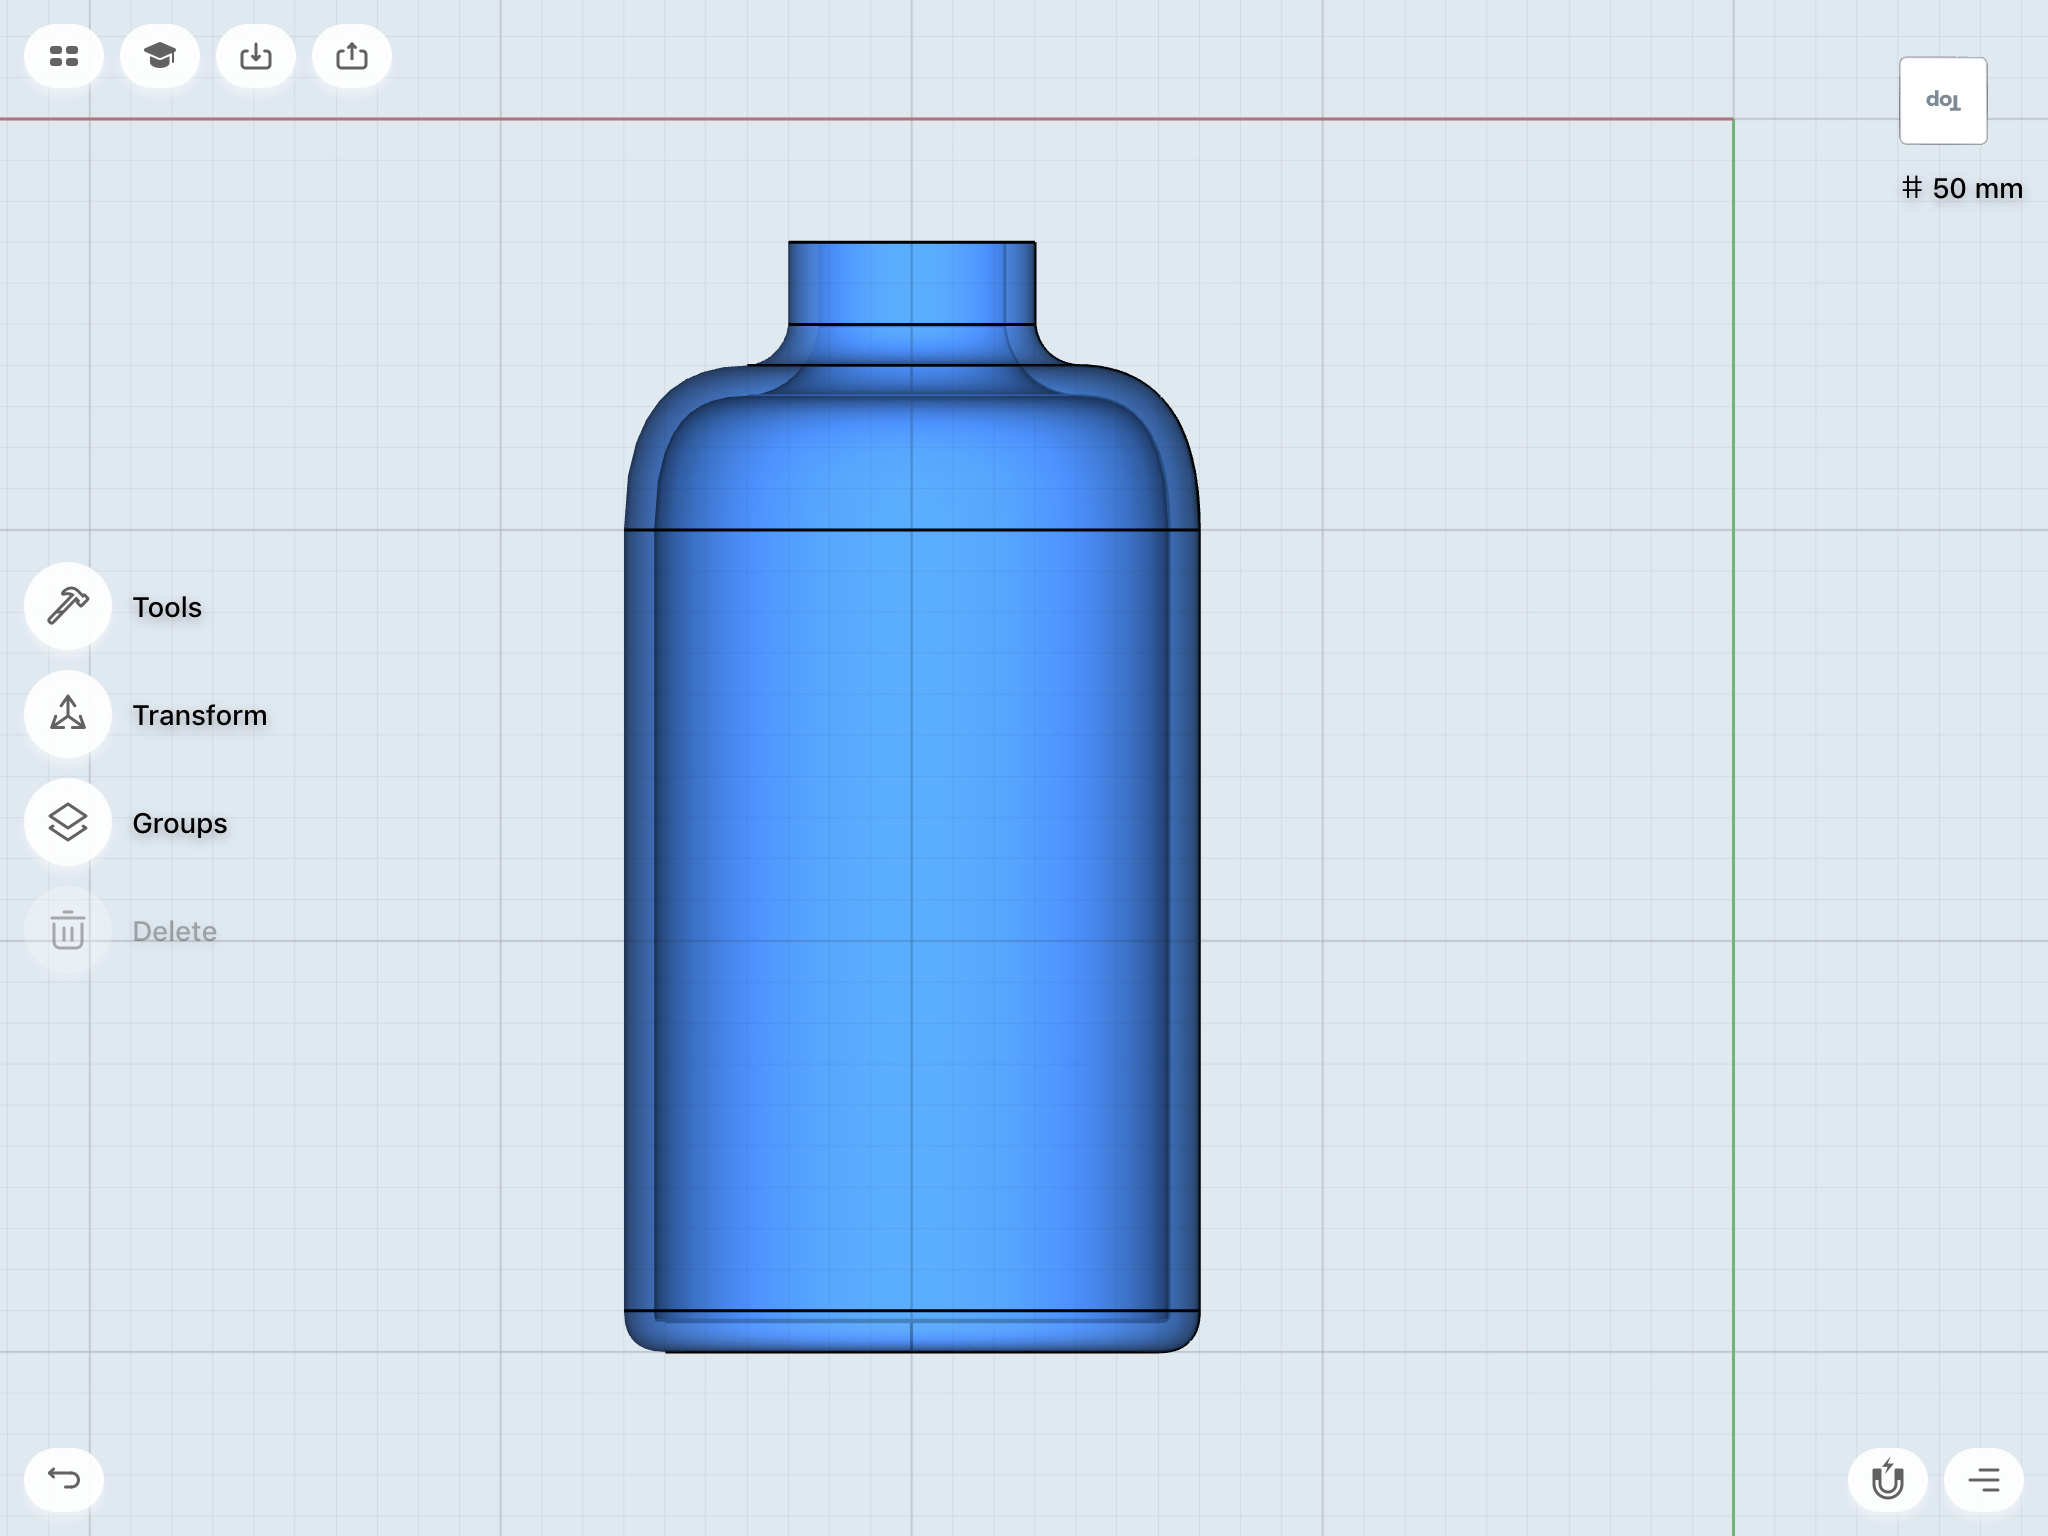 revolved-bottle.png